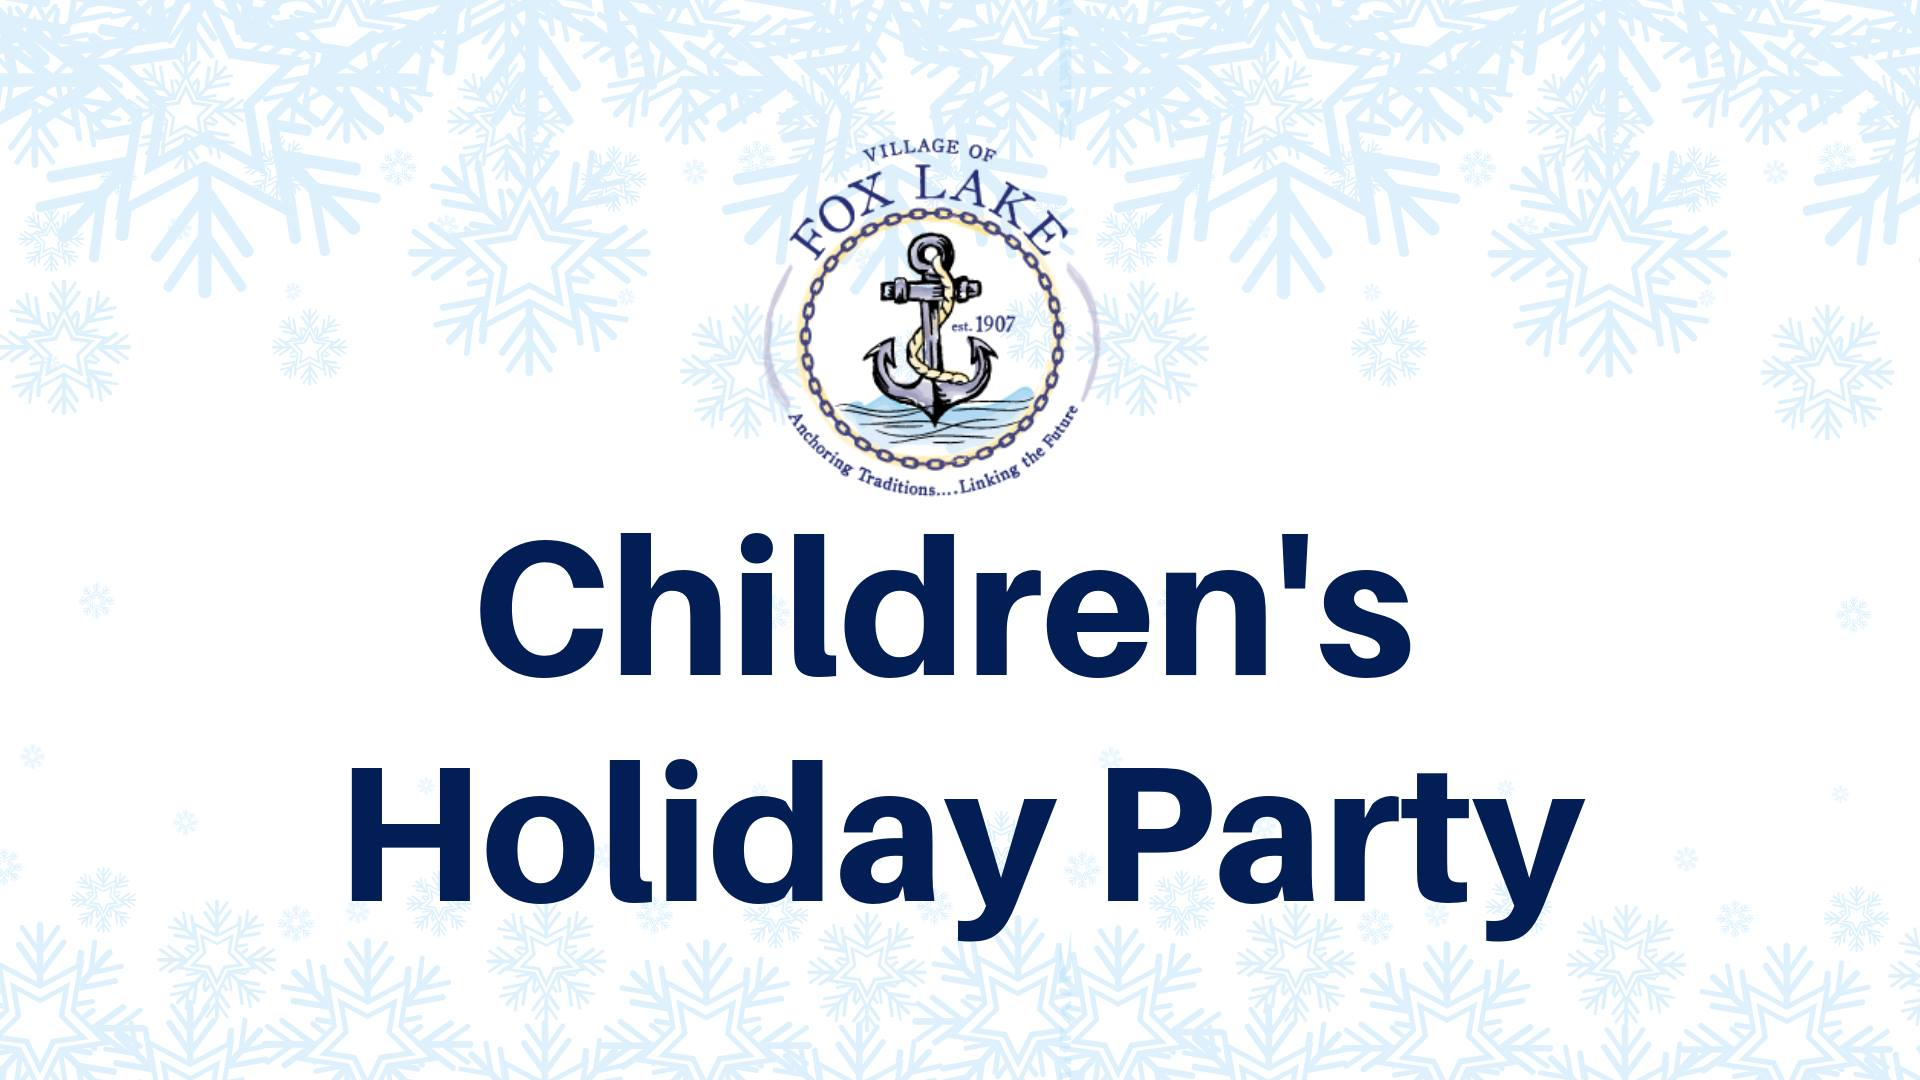 Fox Lake Children's Holiday Party